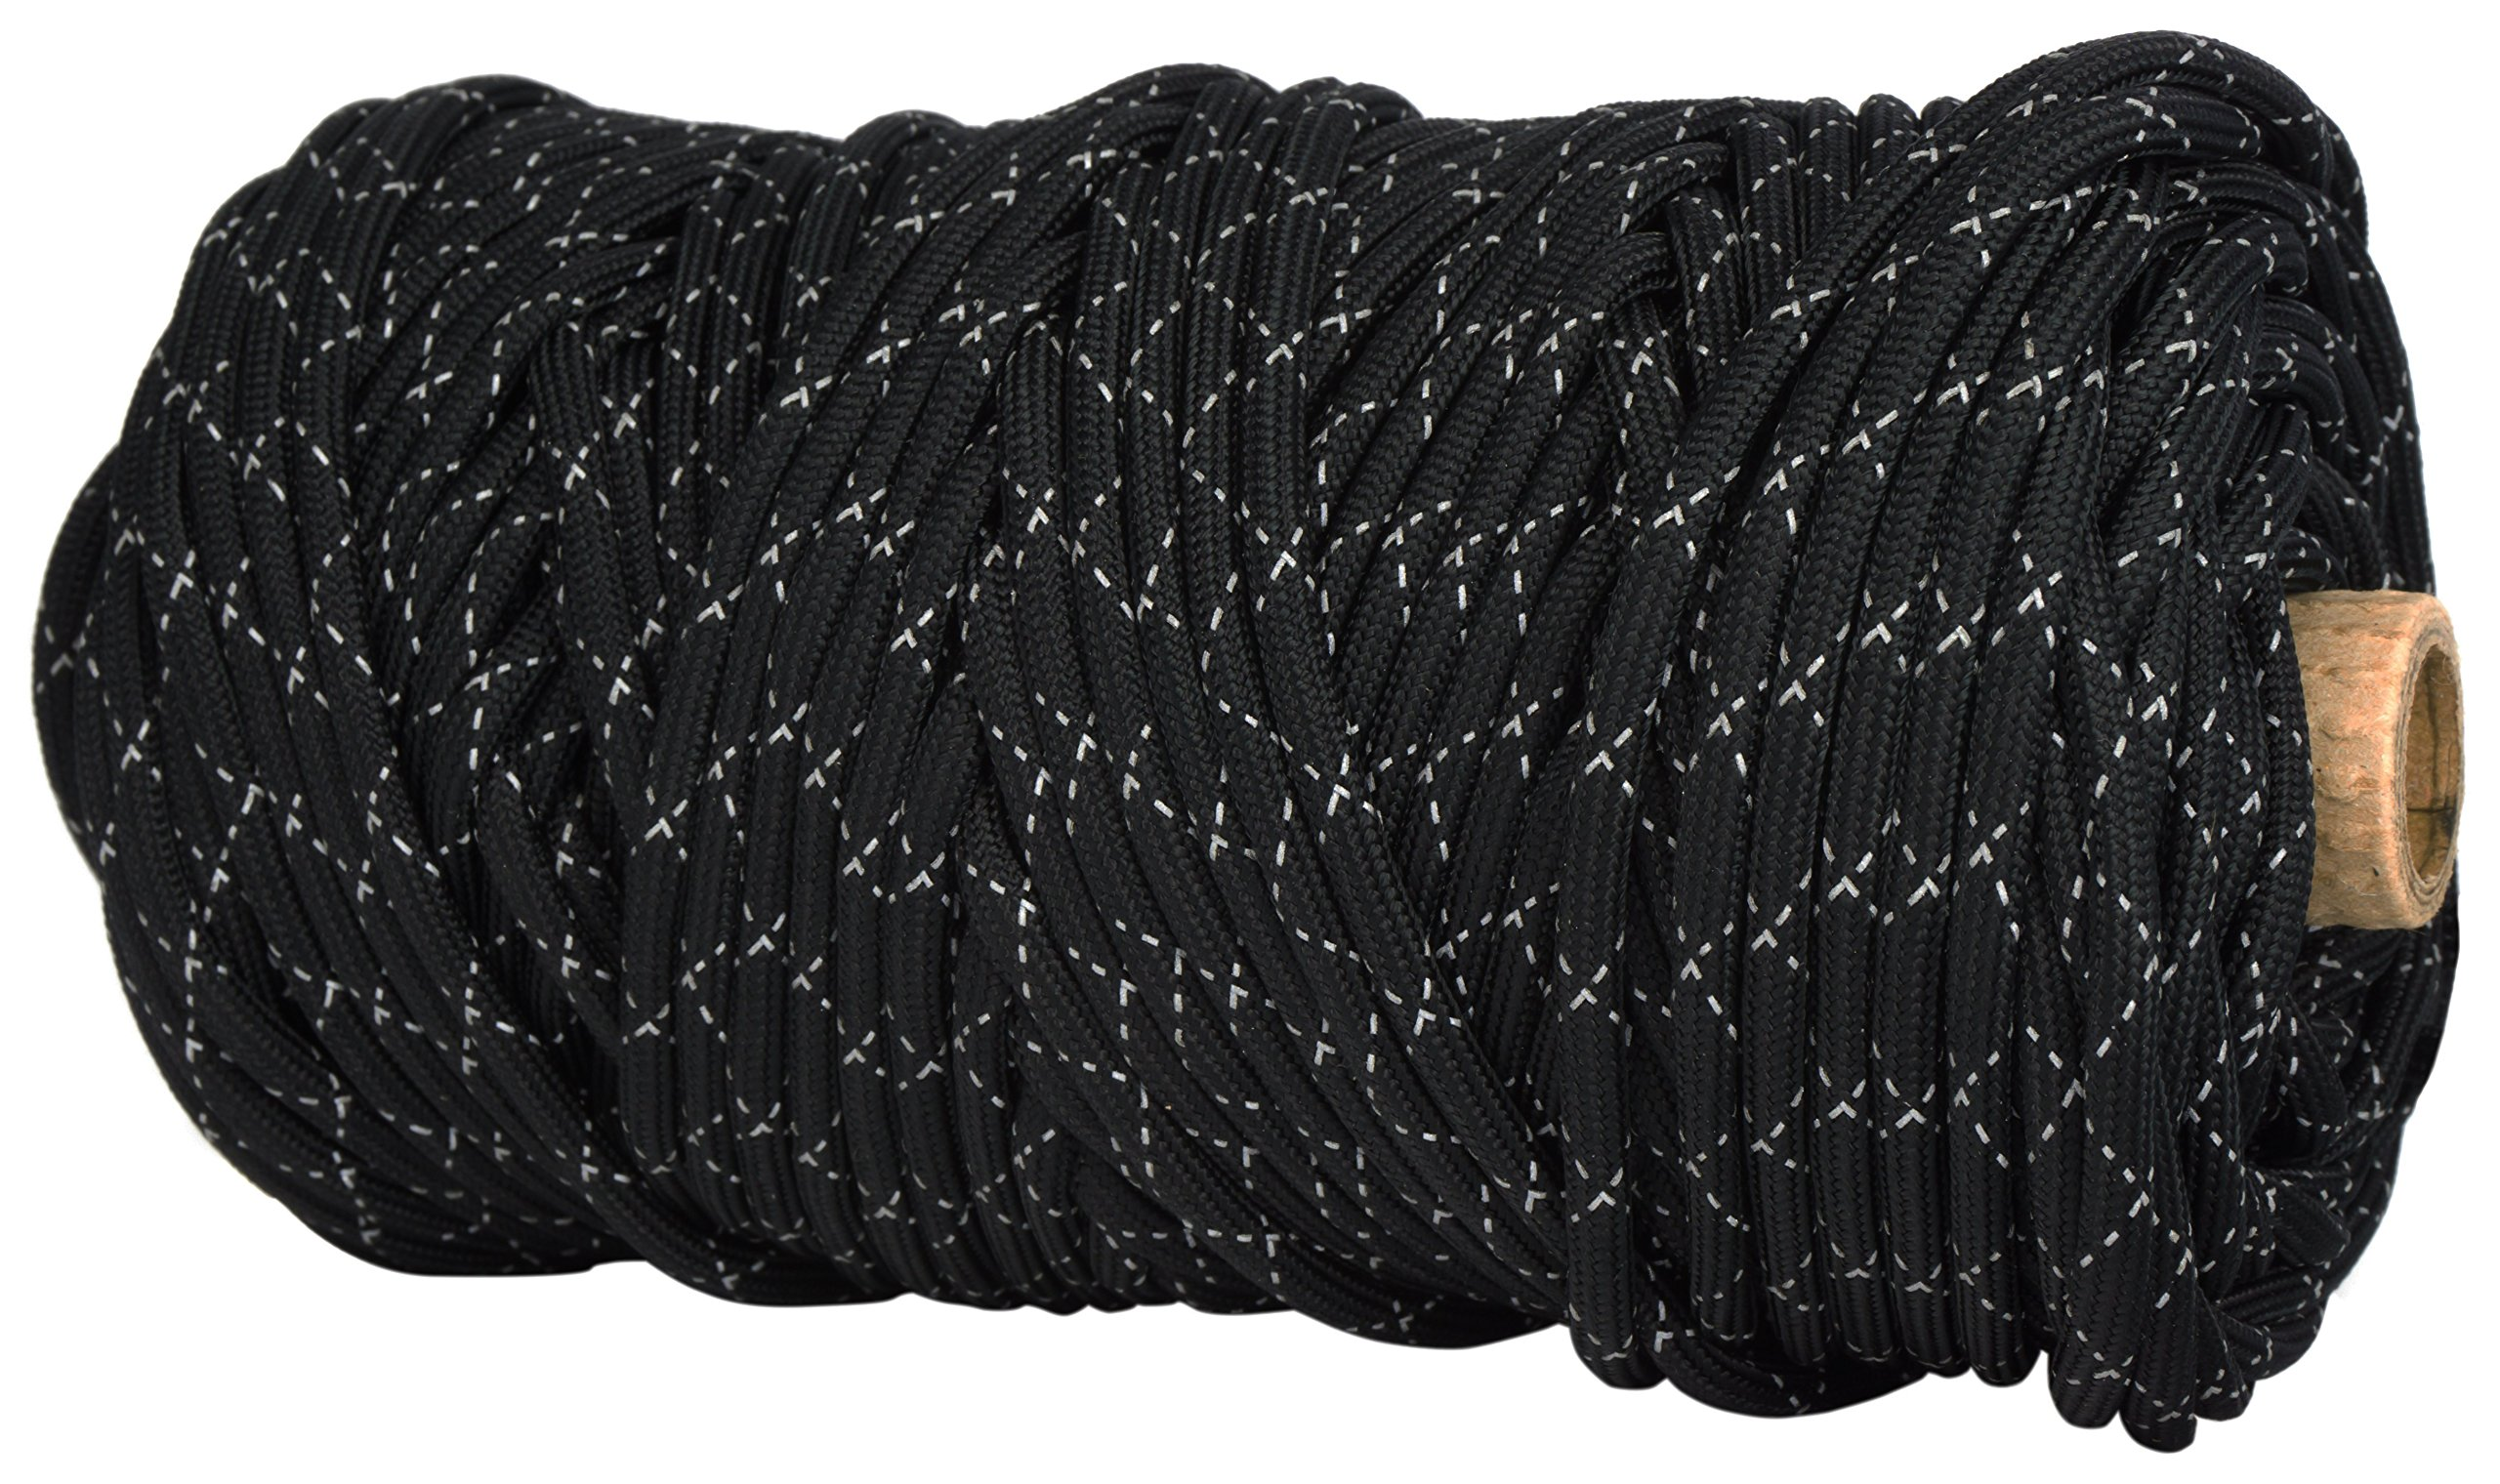 TOUGH-GRID New 700lb Double-Reflective Paracord/Parachute Cord - 2 Vibrant Retro-Reflective Strands for The Ultimate High-Visibility Cord - 100% Nylon - Made in USA. - 500Ft. Black Reflective by TOUGH-GRID (Image #2)